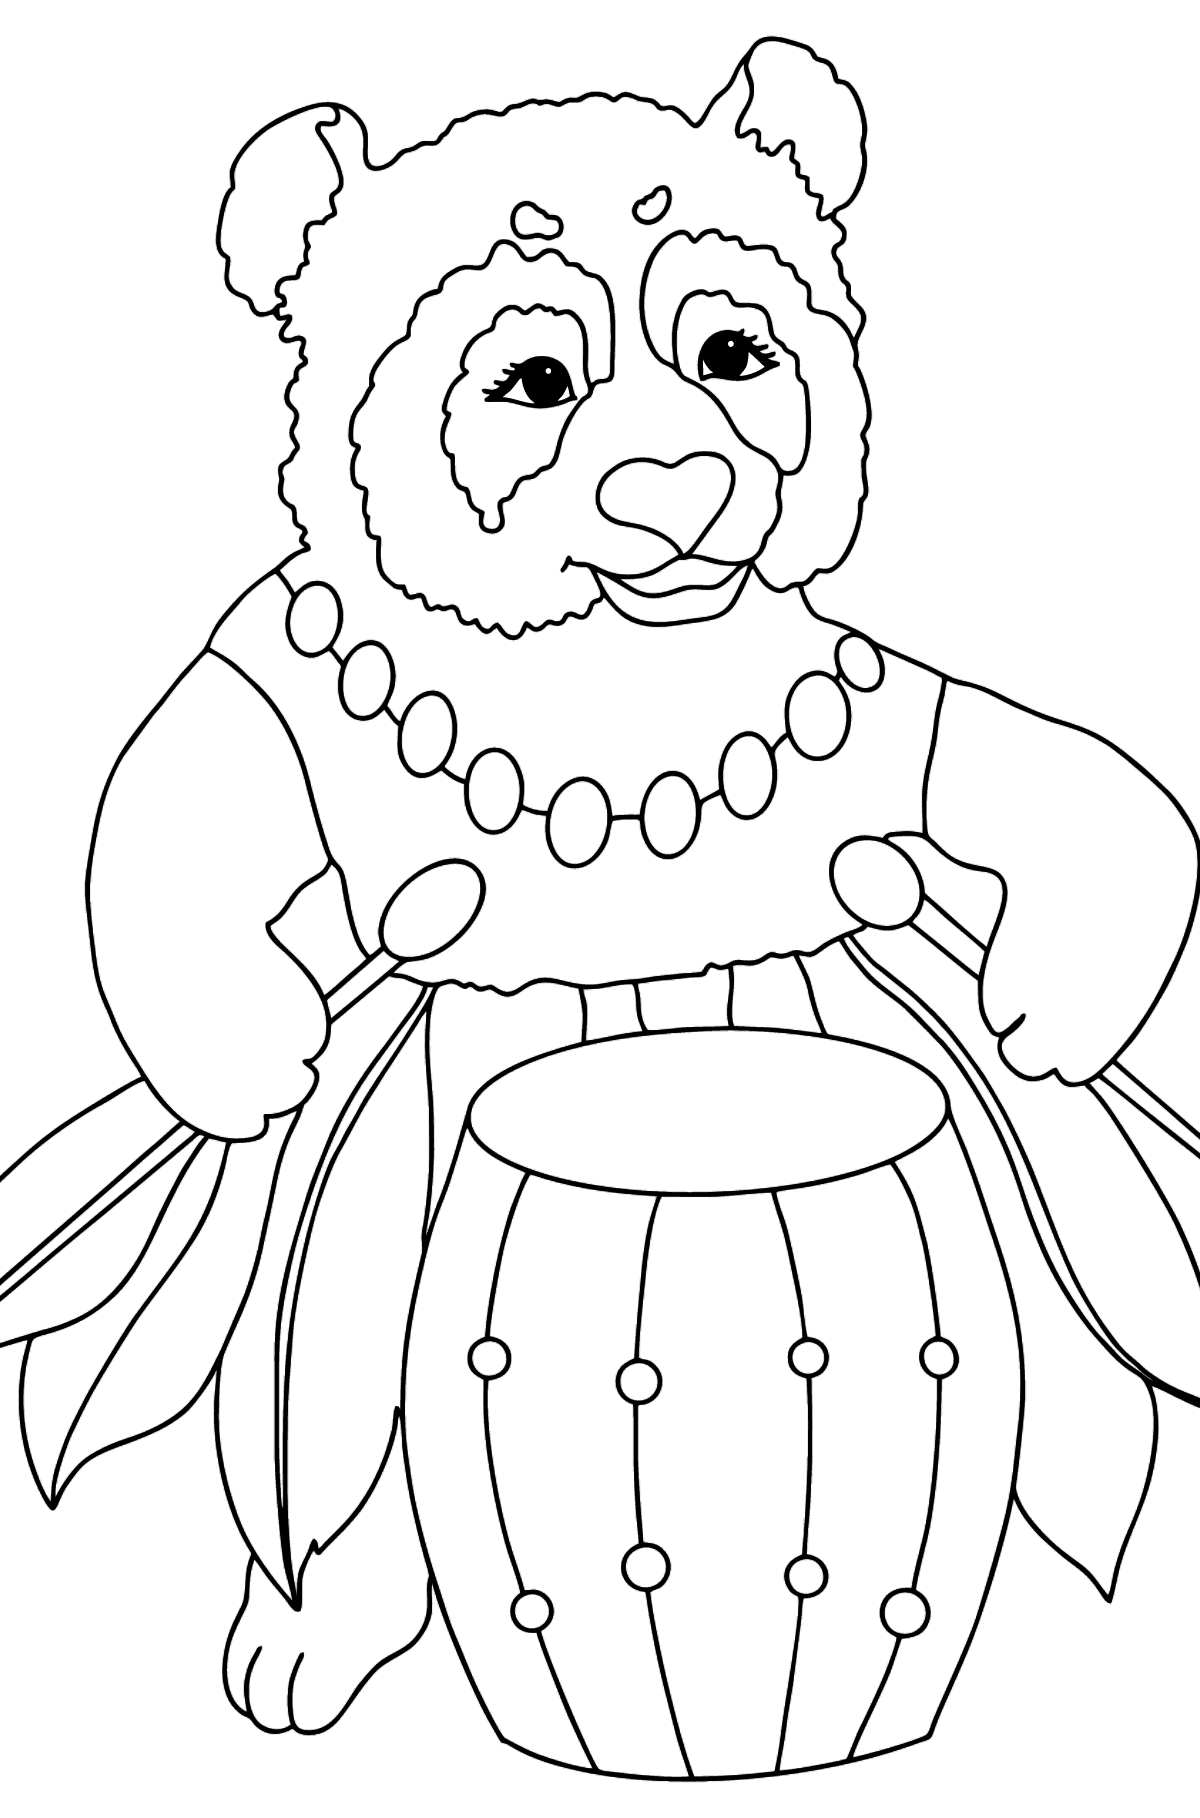 Coloring Picture - A Panda Drummer - Coloring Pages for Kids